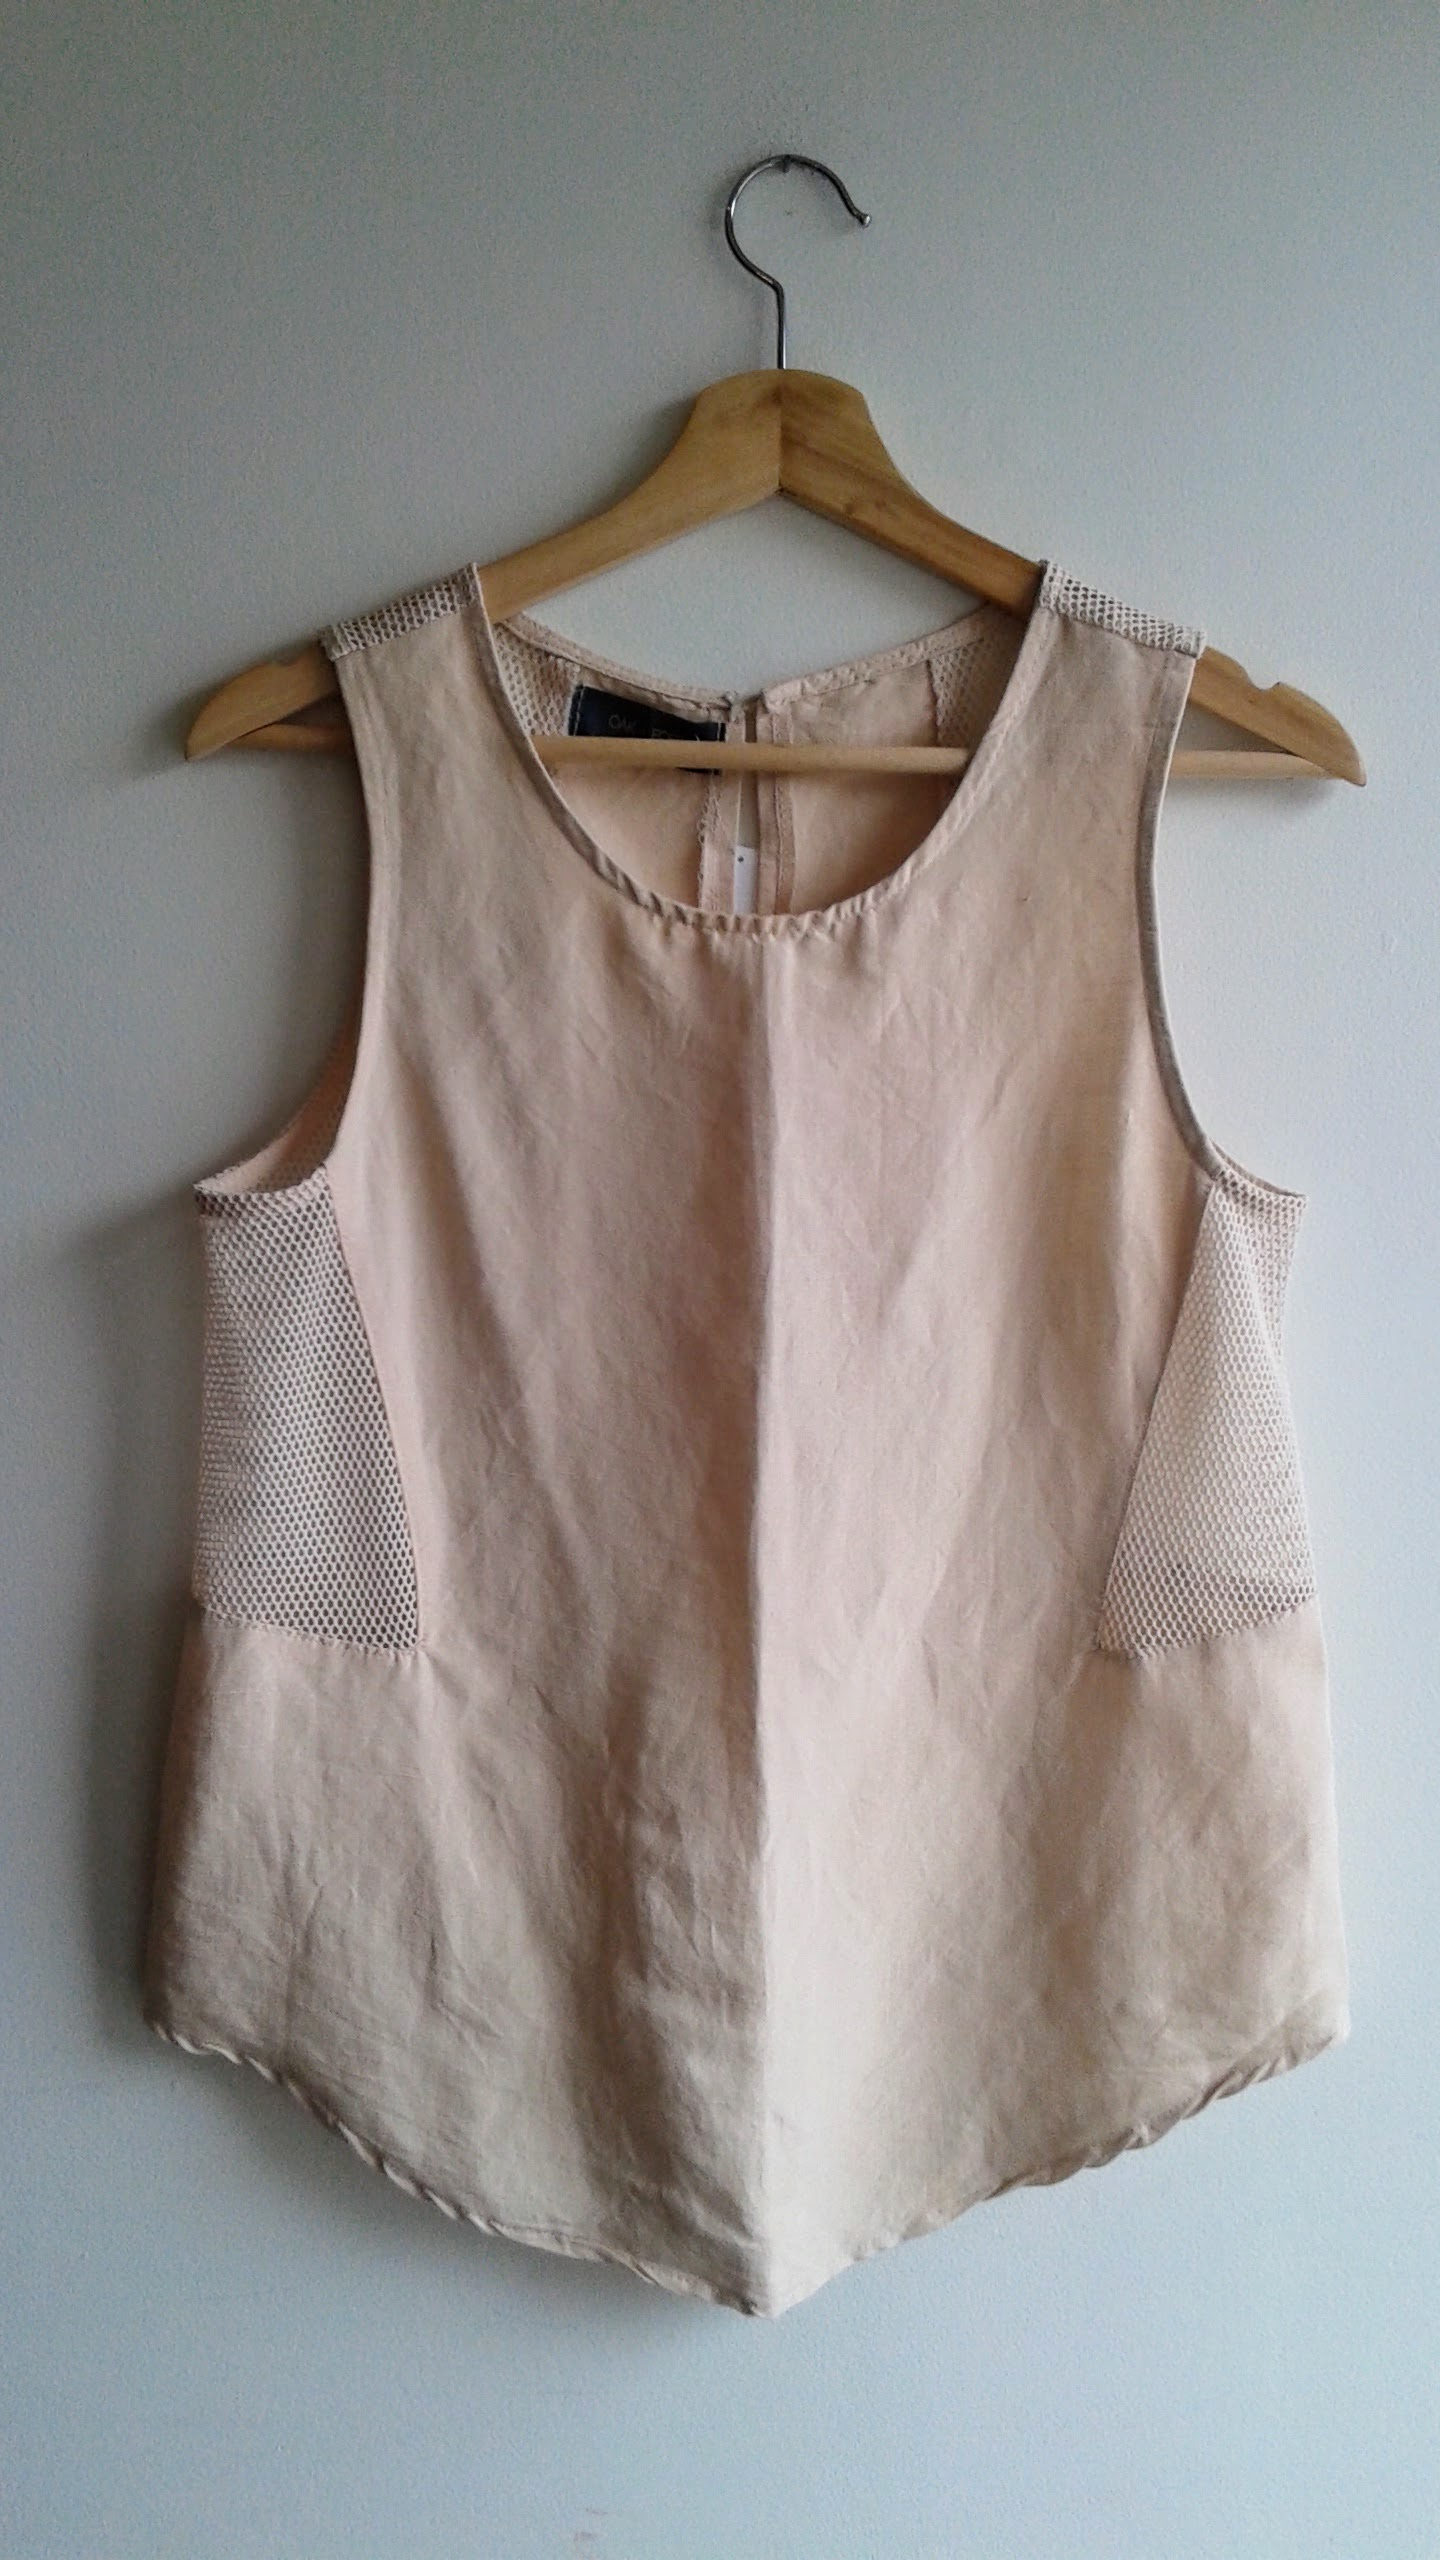 Oak+Fort top; Size S, $26